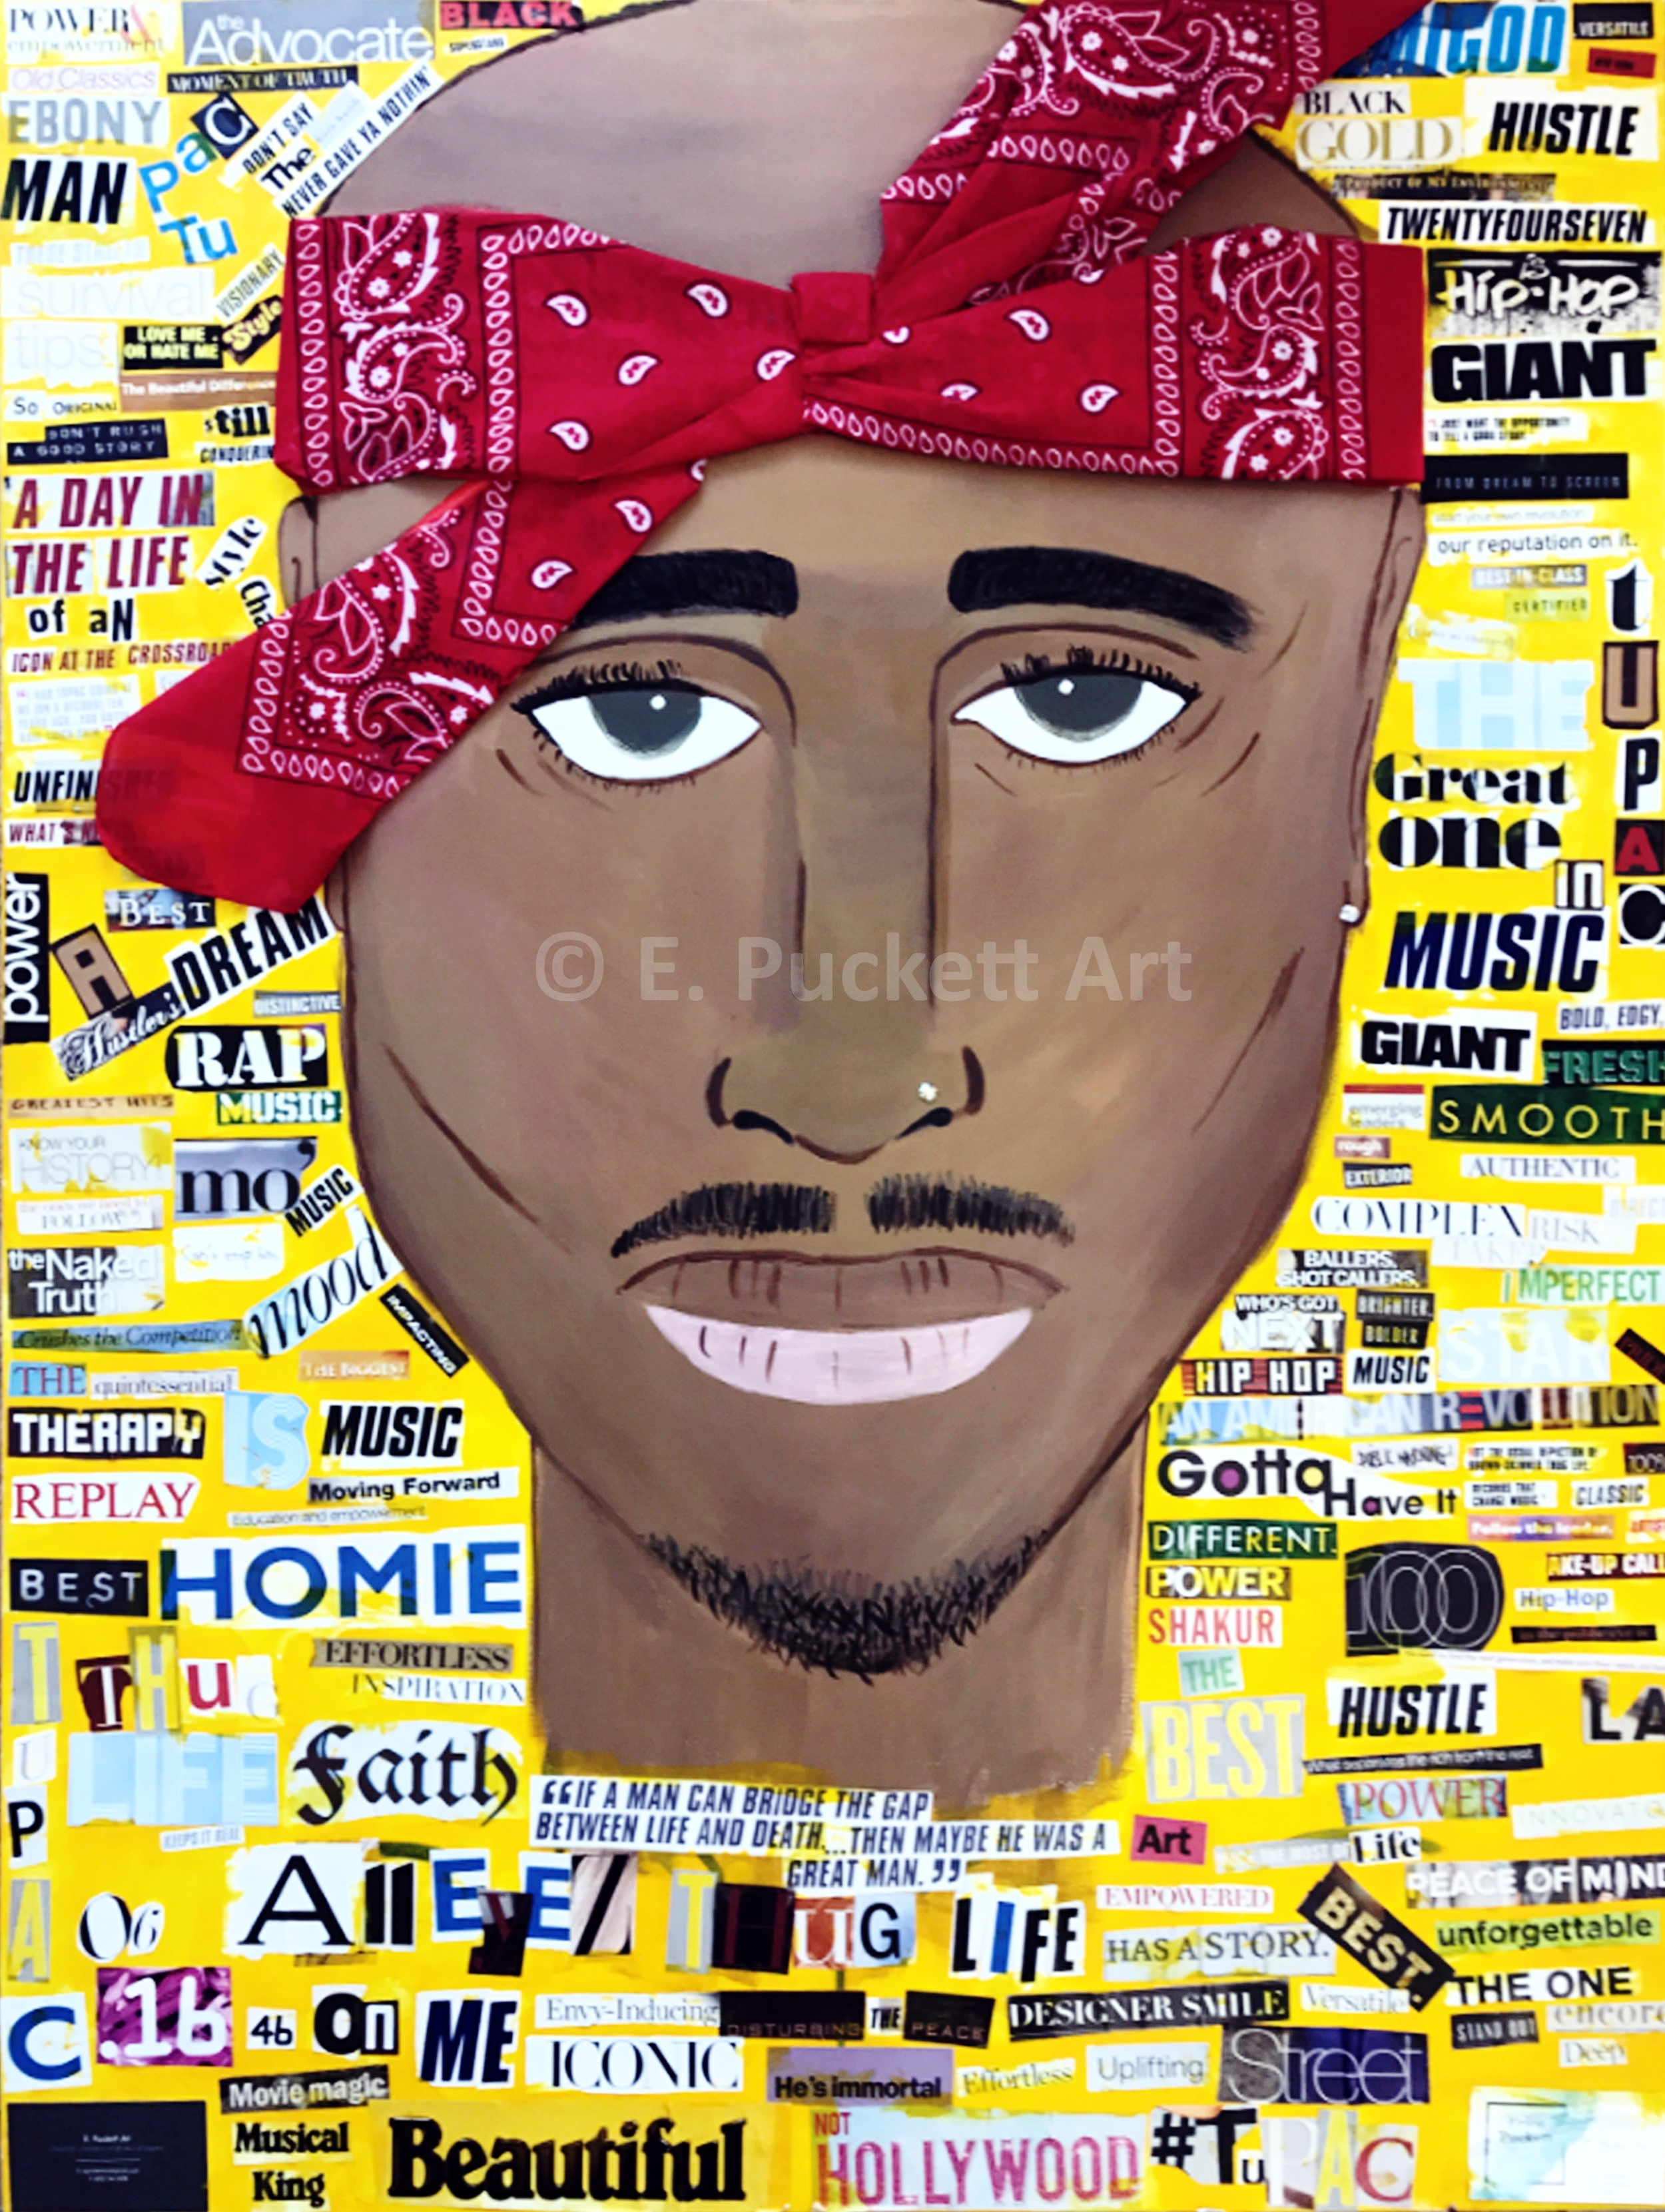 Ode to Pac